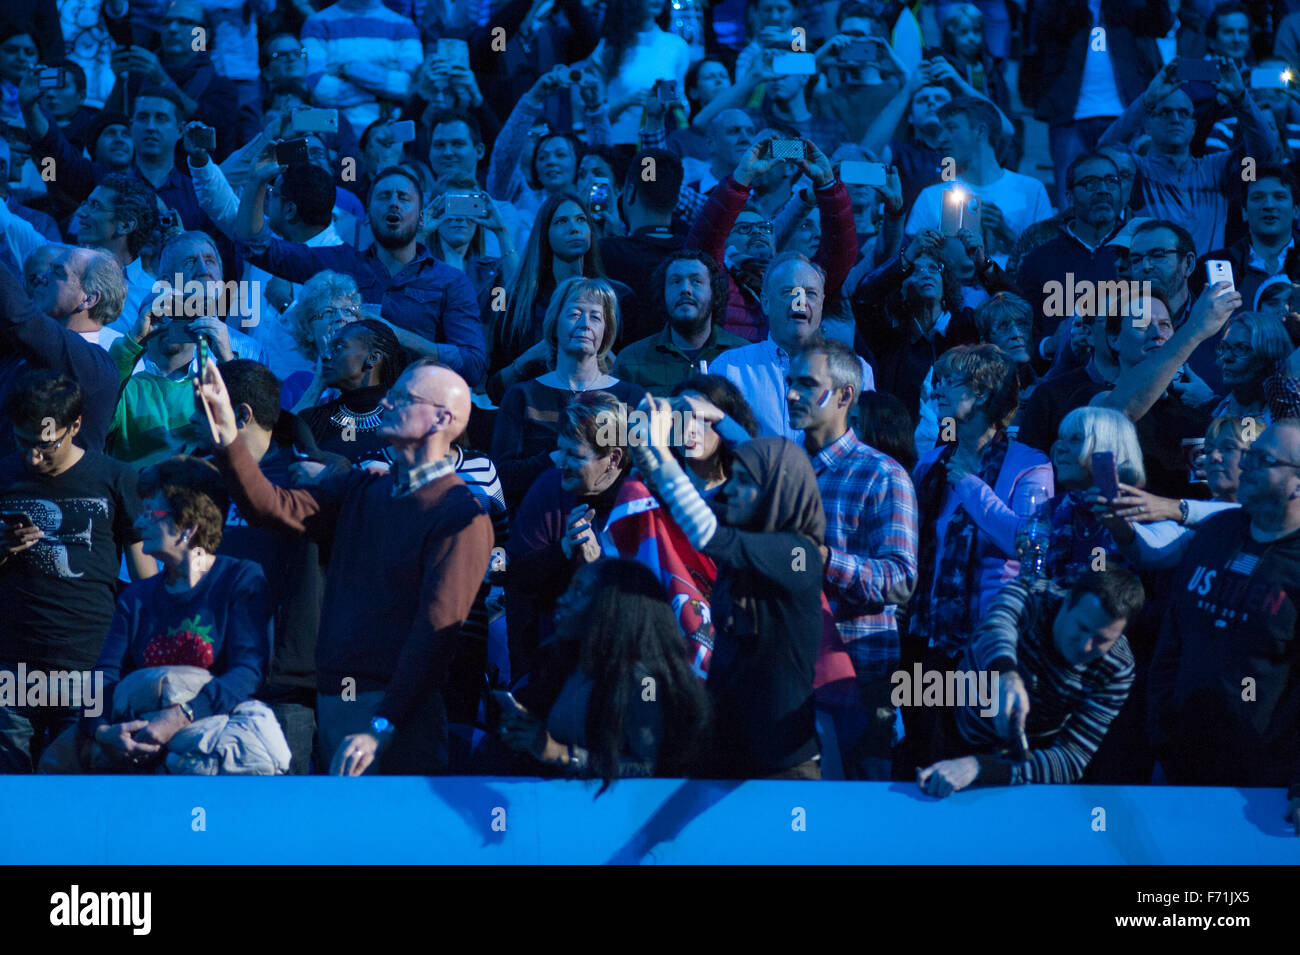 Fans await arrival of Novak Djokovic on court for the ATP World Tour Final 2015 match against Roger Federer at the - Stock Image